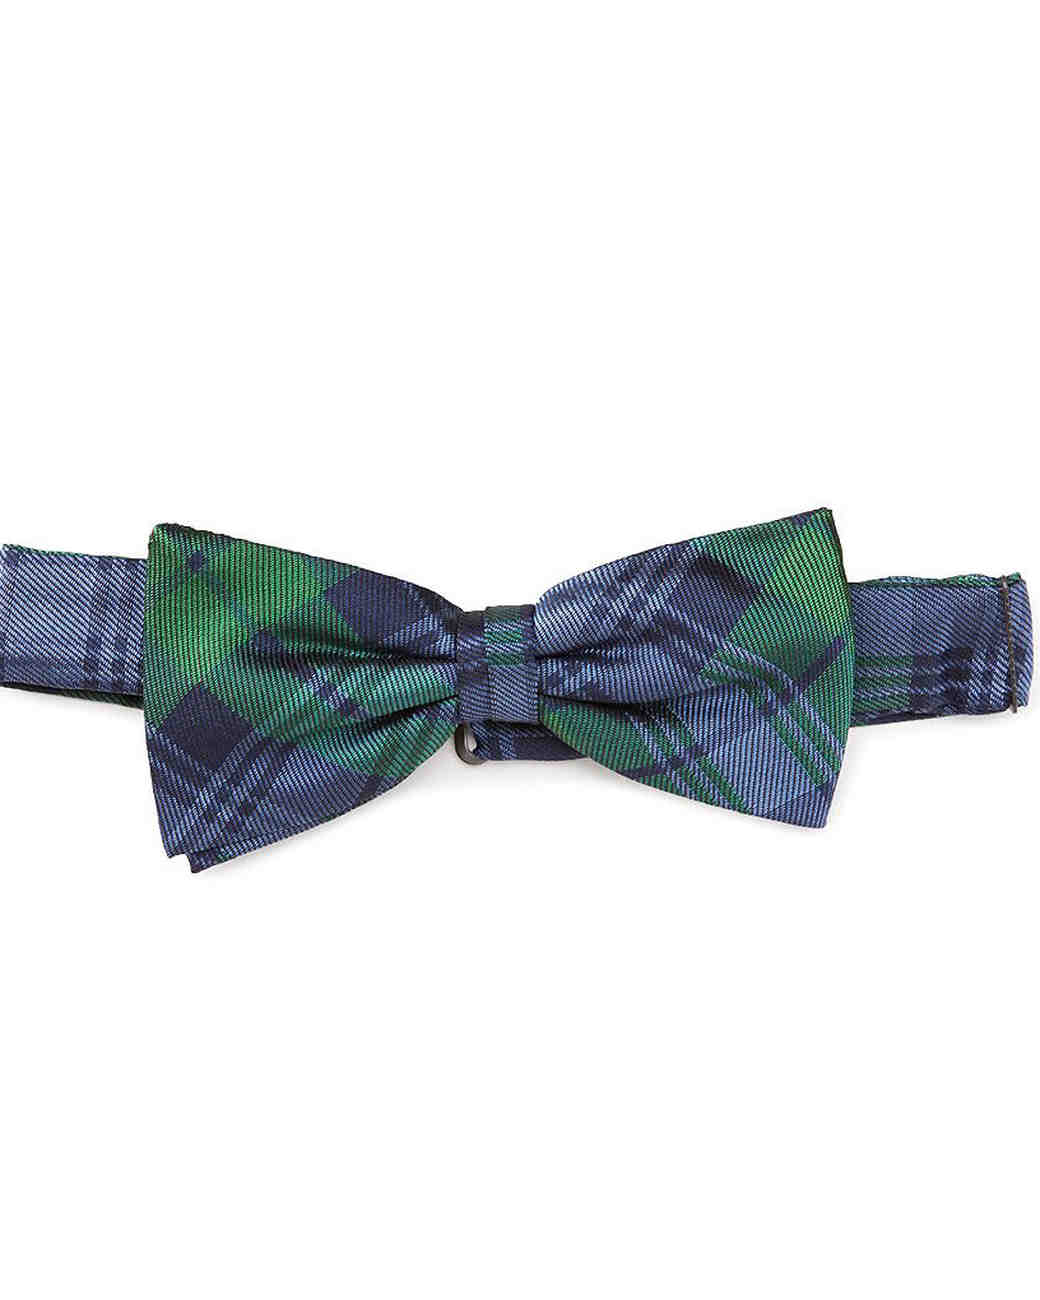 blue and green bowtie